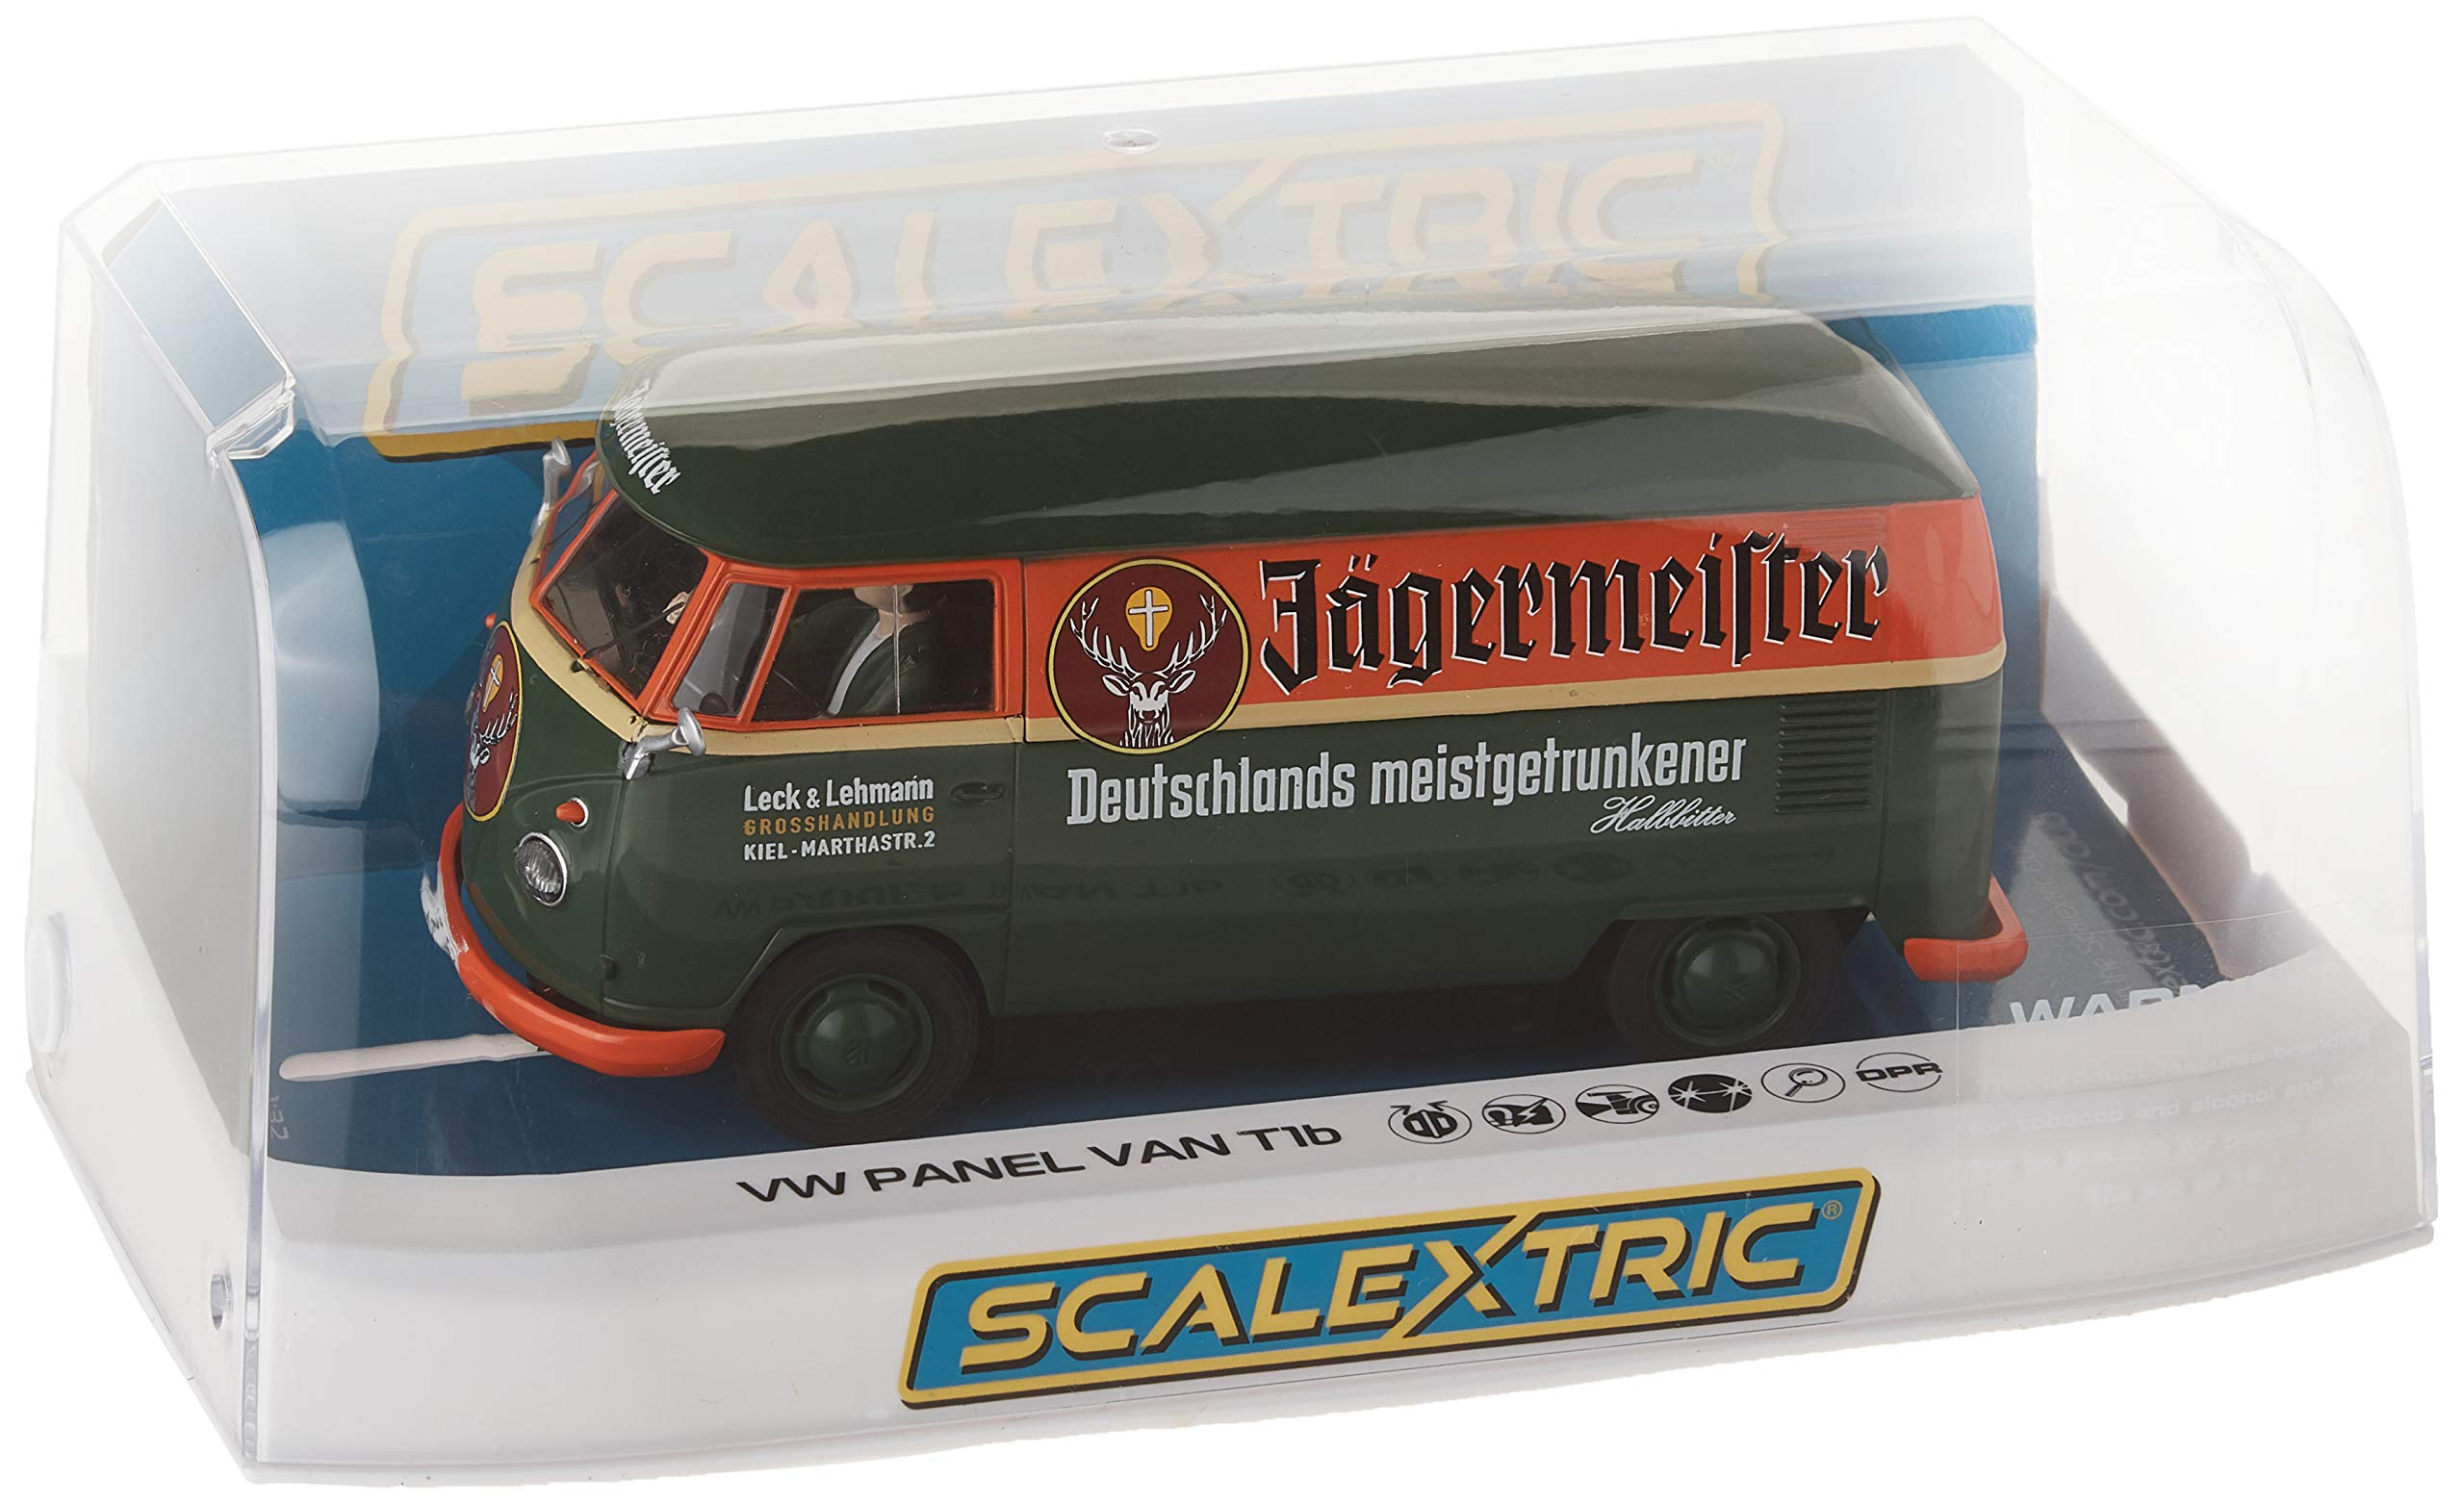 Scalextric Volkswagen Jagermeister Panelvan 1:32 Slot Race Car C3938 by Scalextric (Image #3)